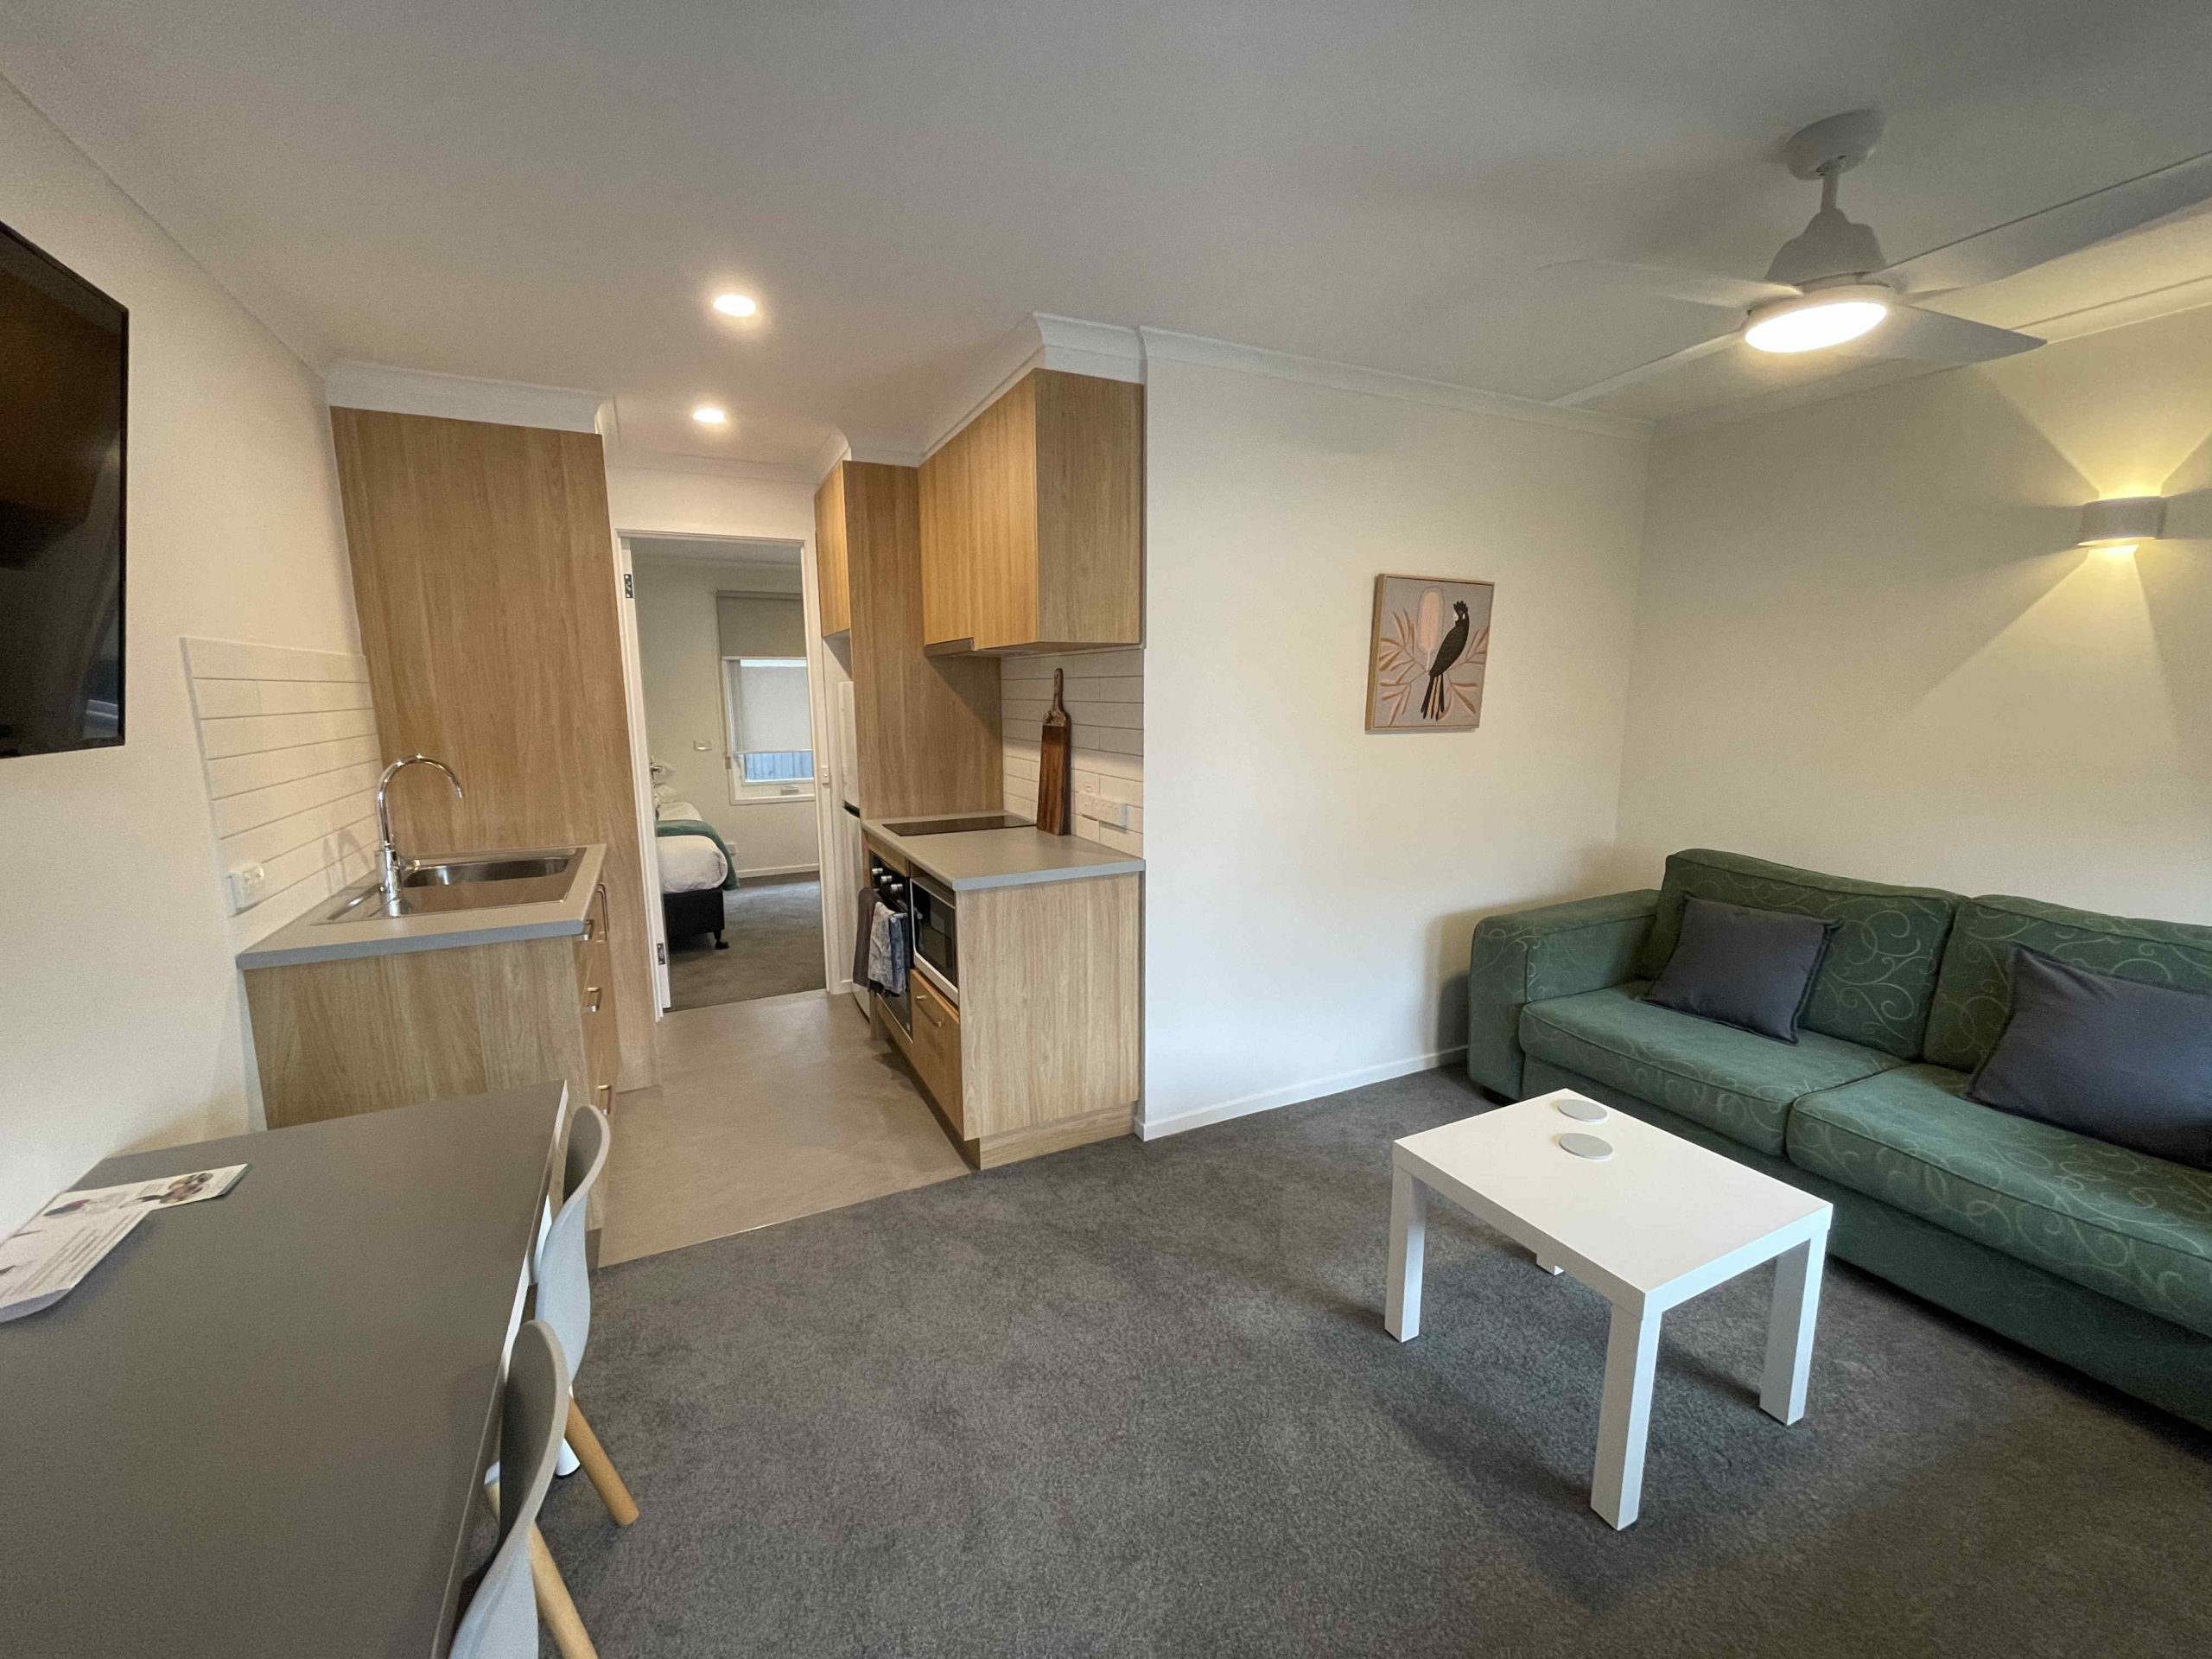 Lounge/living area and kitchen of one bedroom apartment with one king bed and one single bed